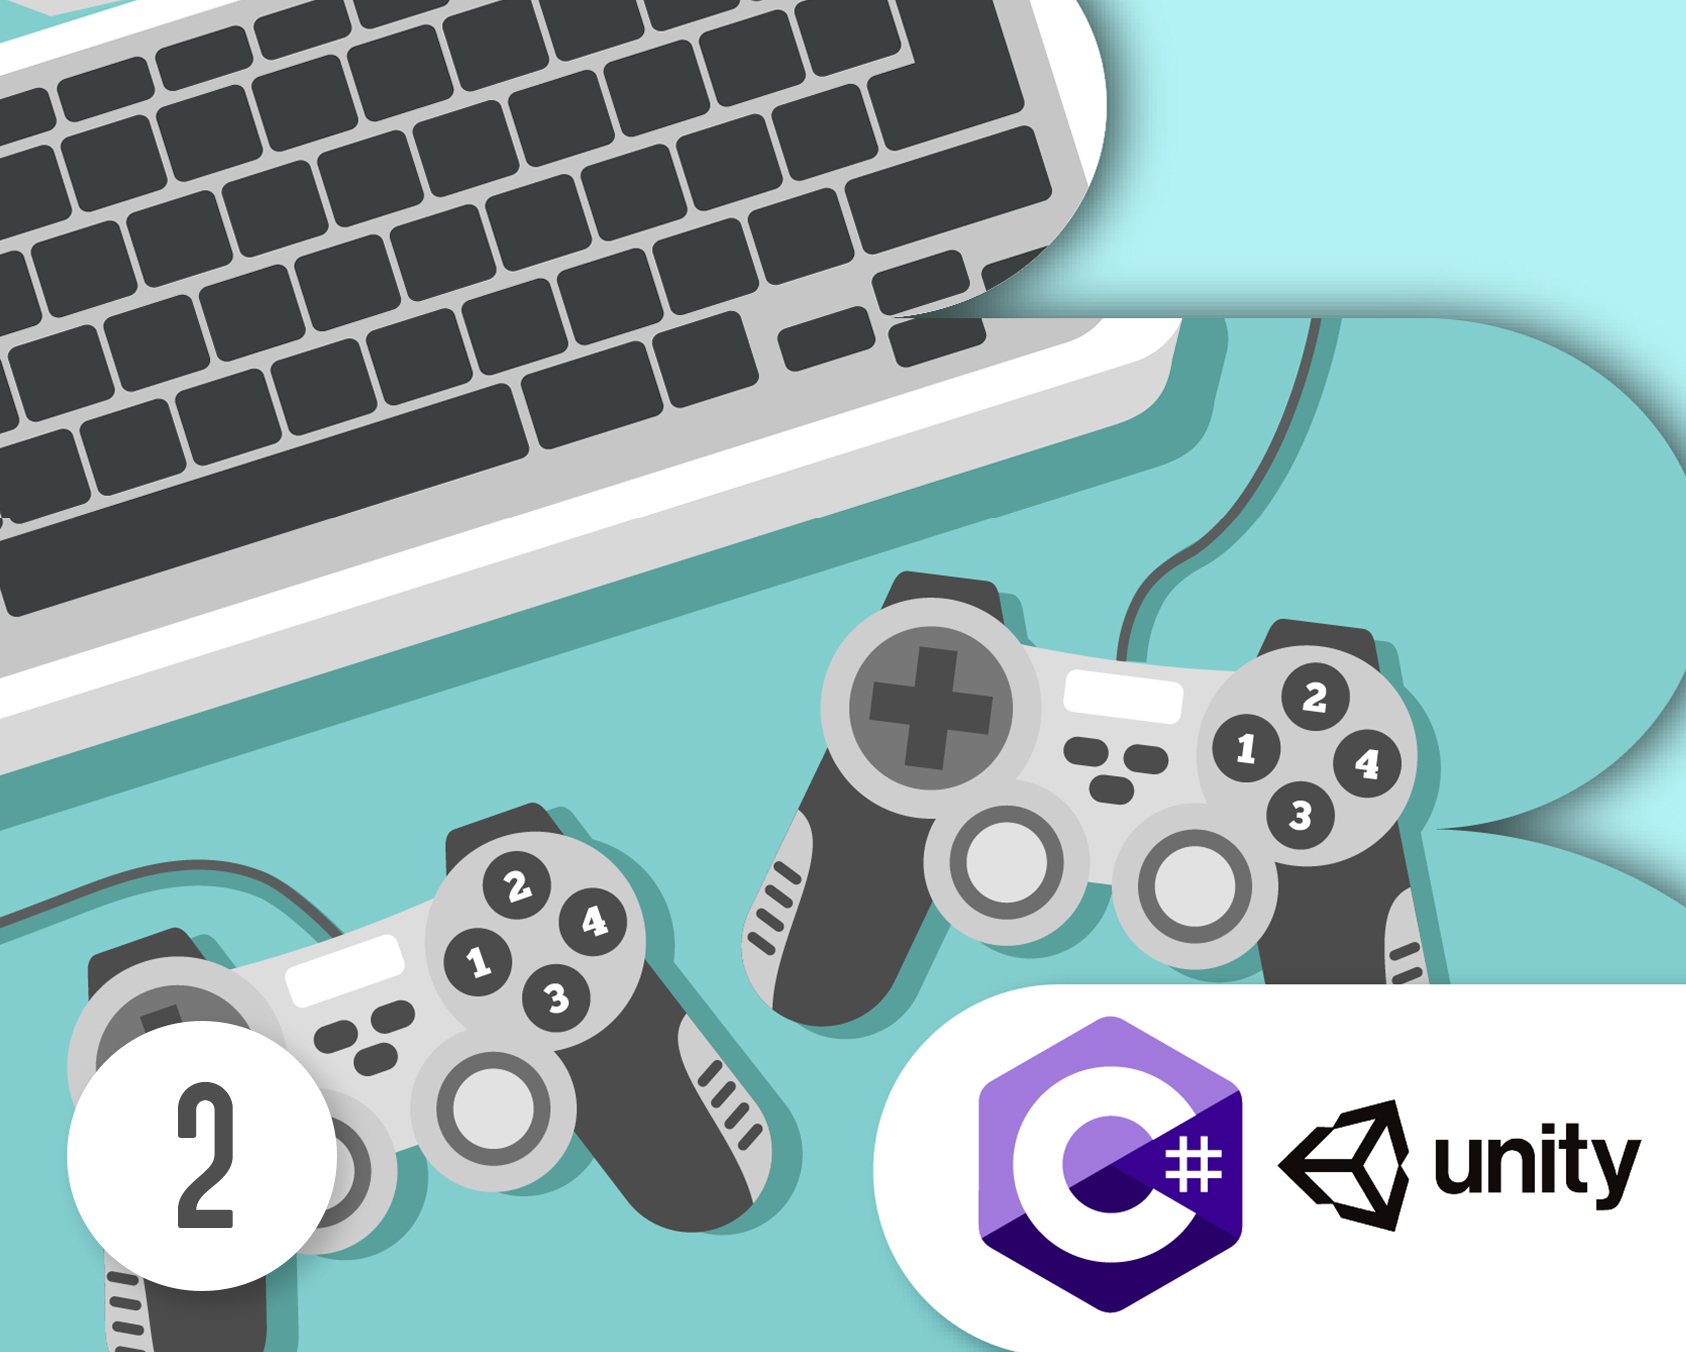 Creating computer games in Unity semester 2